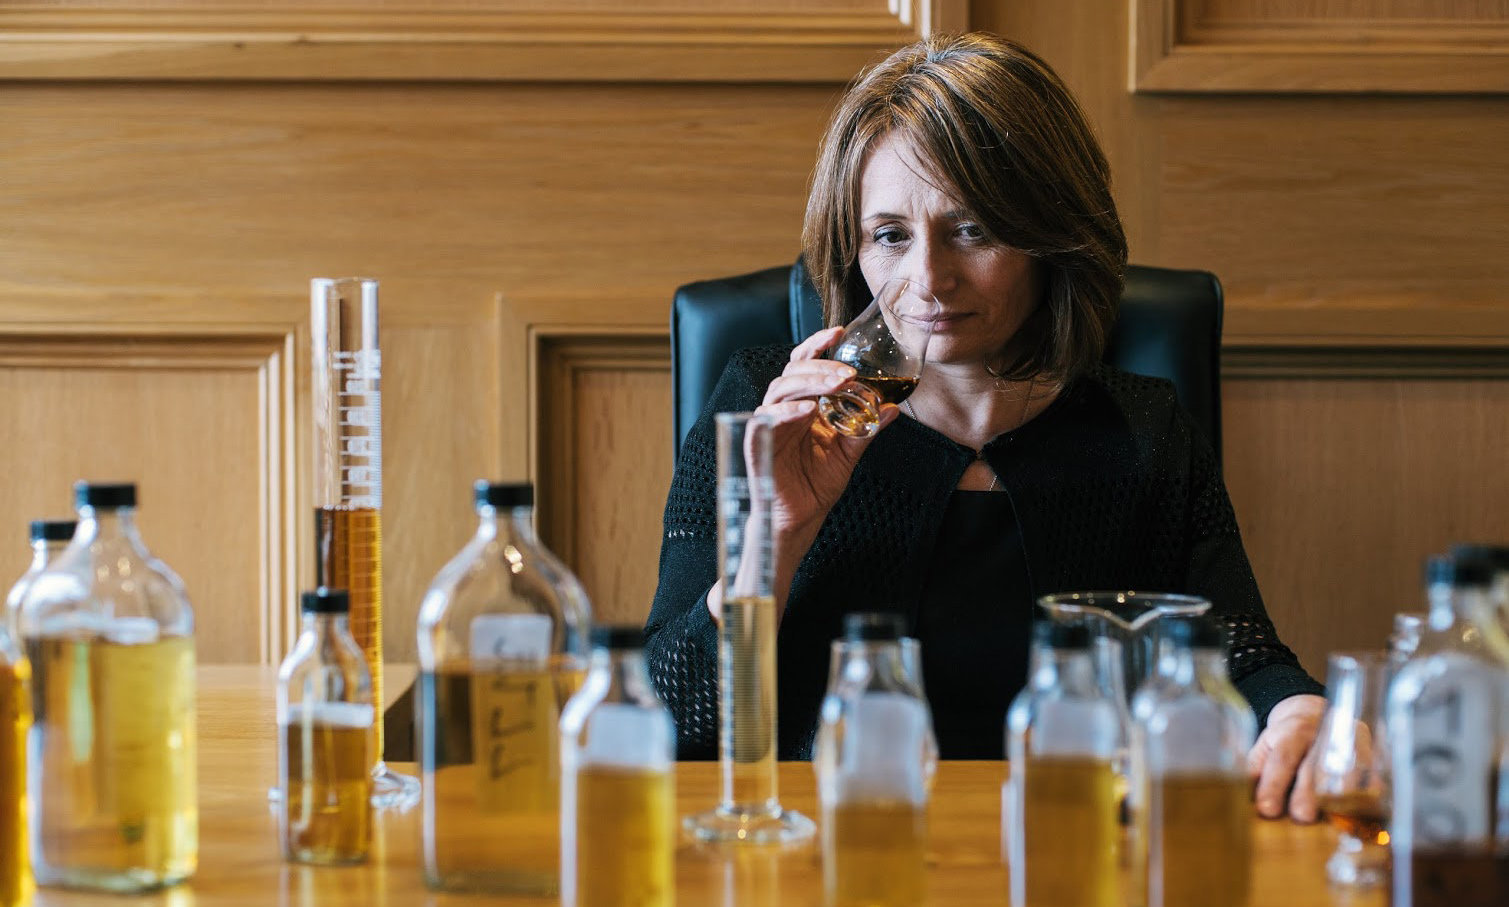 Rachel Barrie creates some of the world's finest single malts